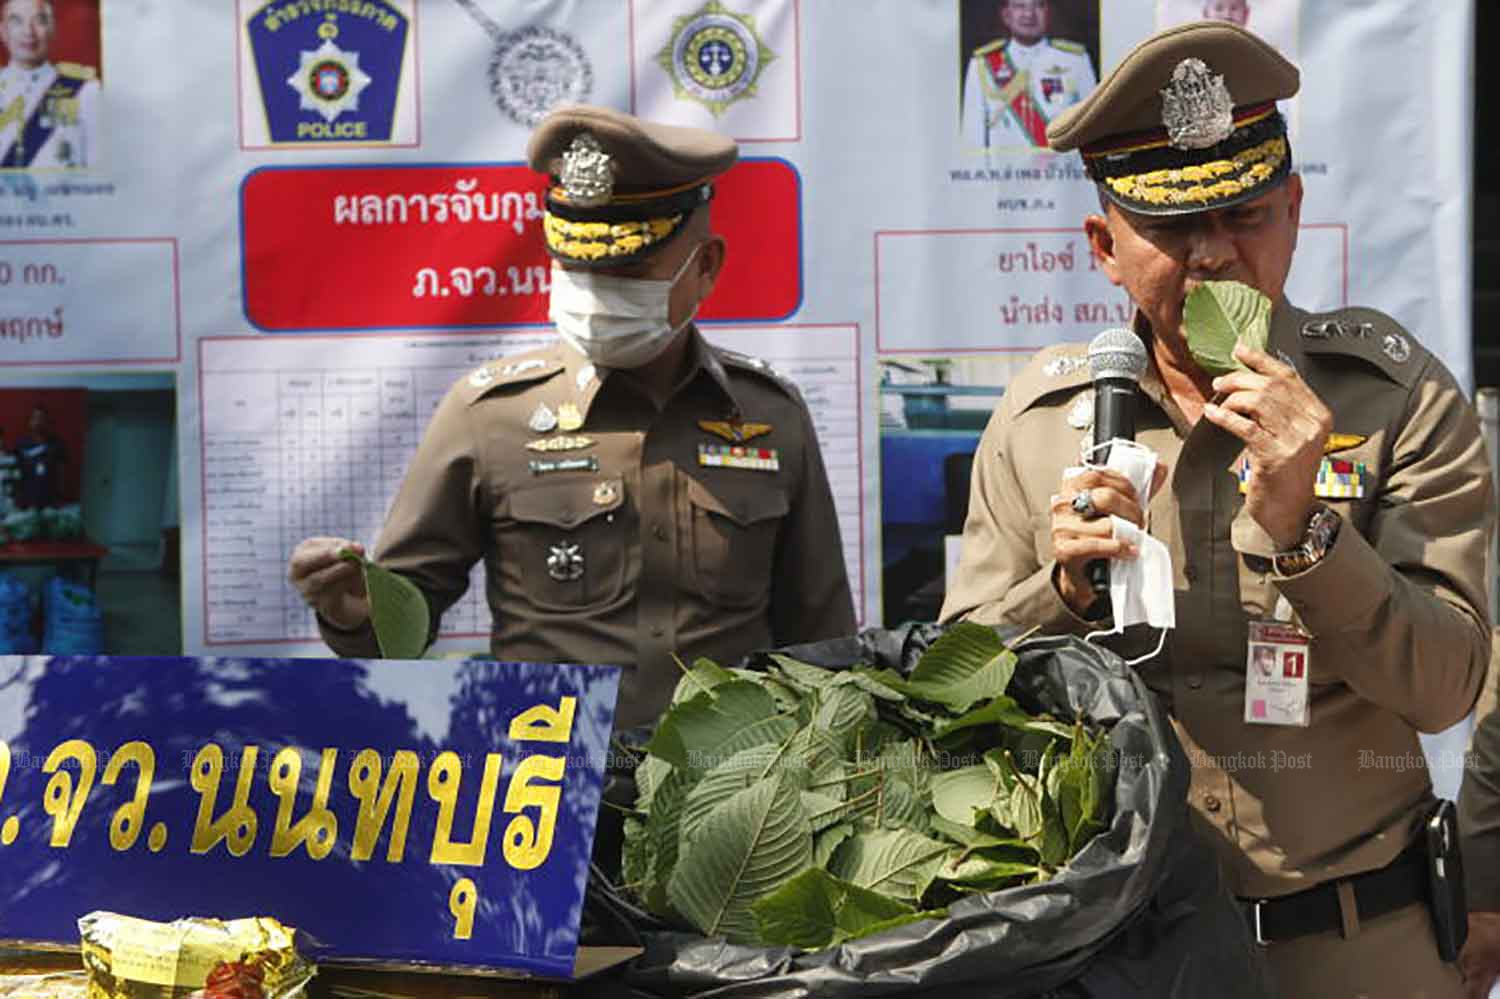 Police display some of their vast haul of Kratom leaves following a crackdown on drug networks in the central region, in Nonthaburi province in February. (Photo: Nutthawat Wicheanbut)